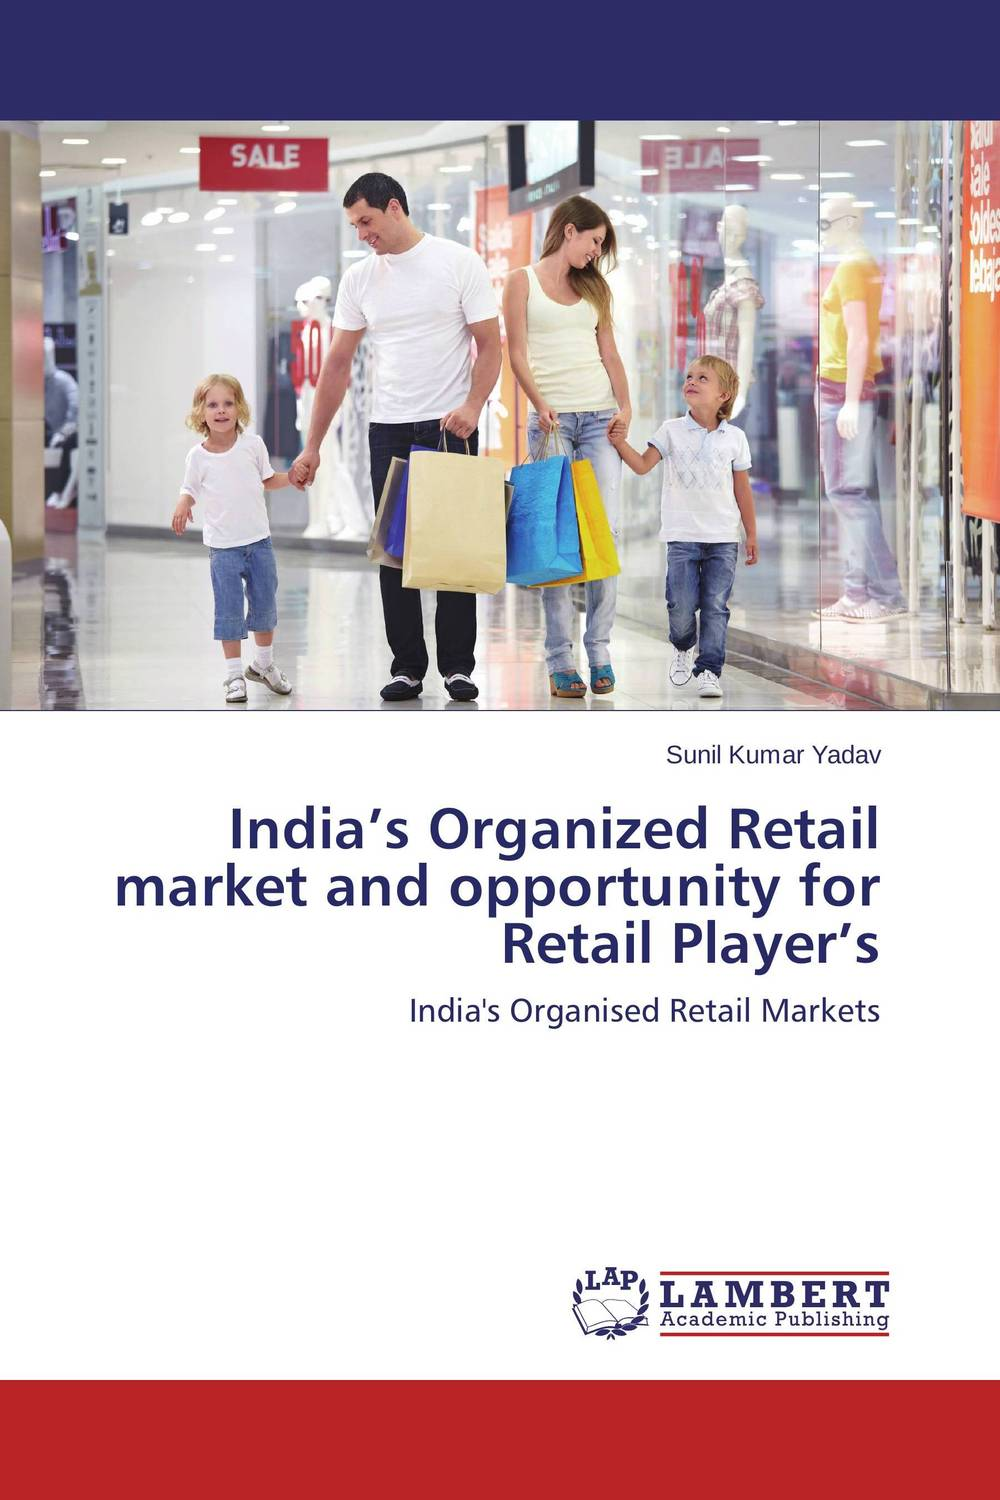 India's Organized Retail market and opportunity for Retail Player's michel chevalier luxury retail management how the world s top brands provide quality product and service support